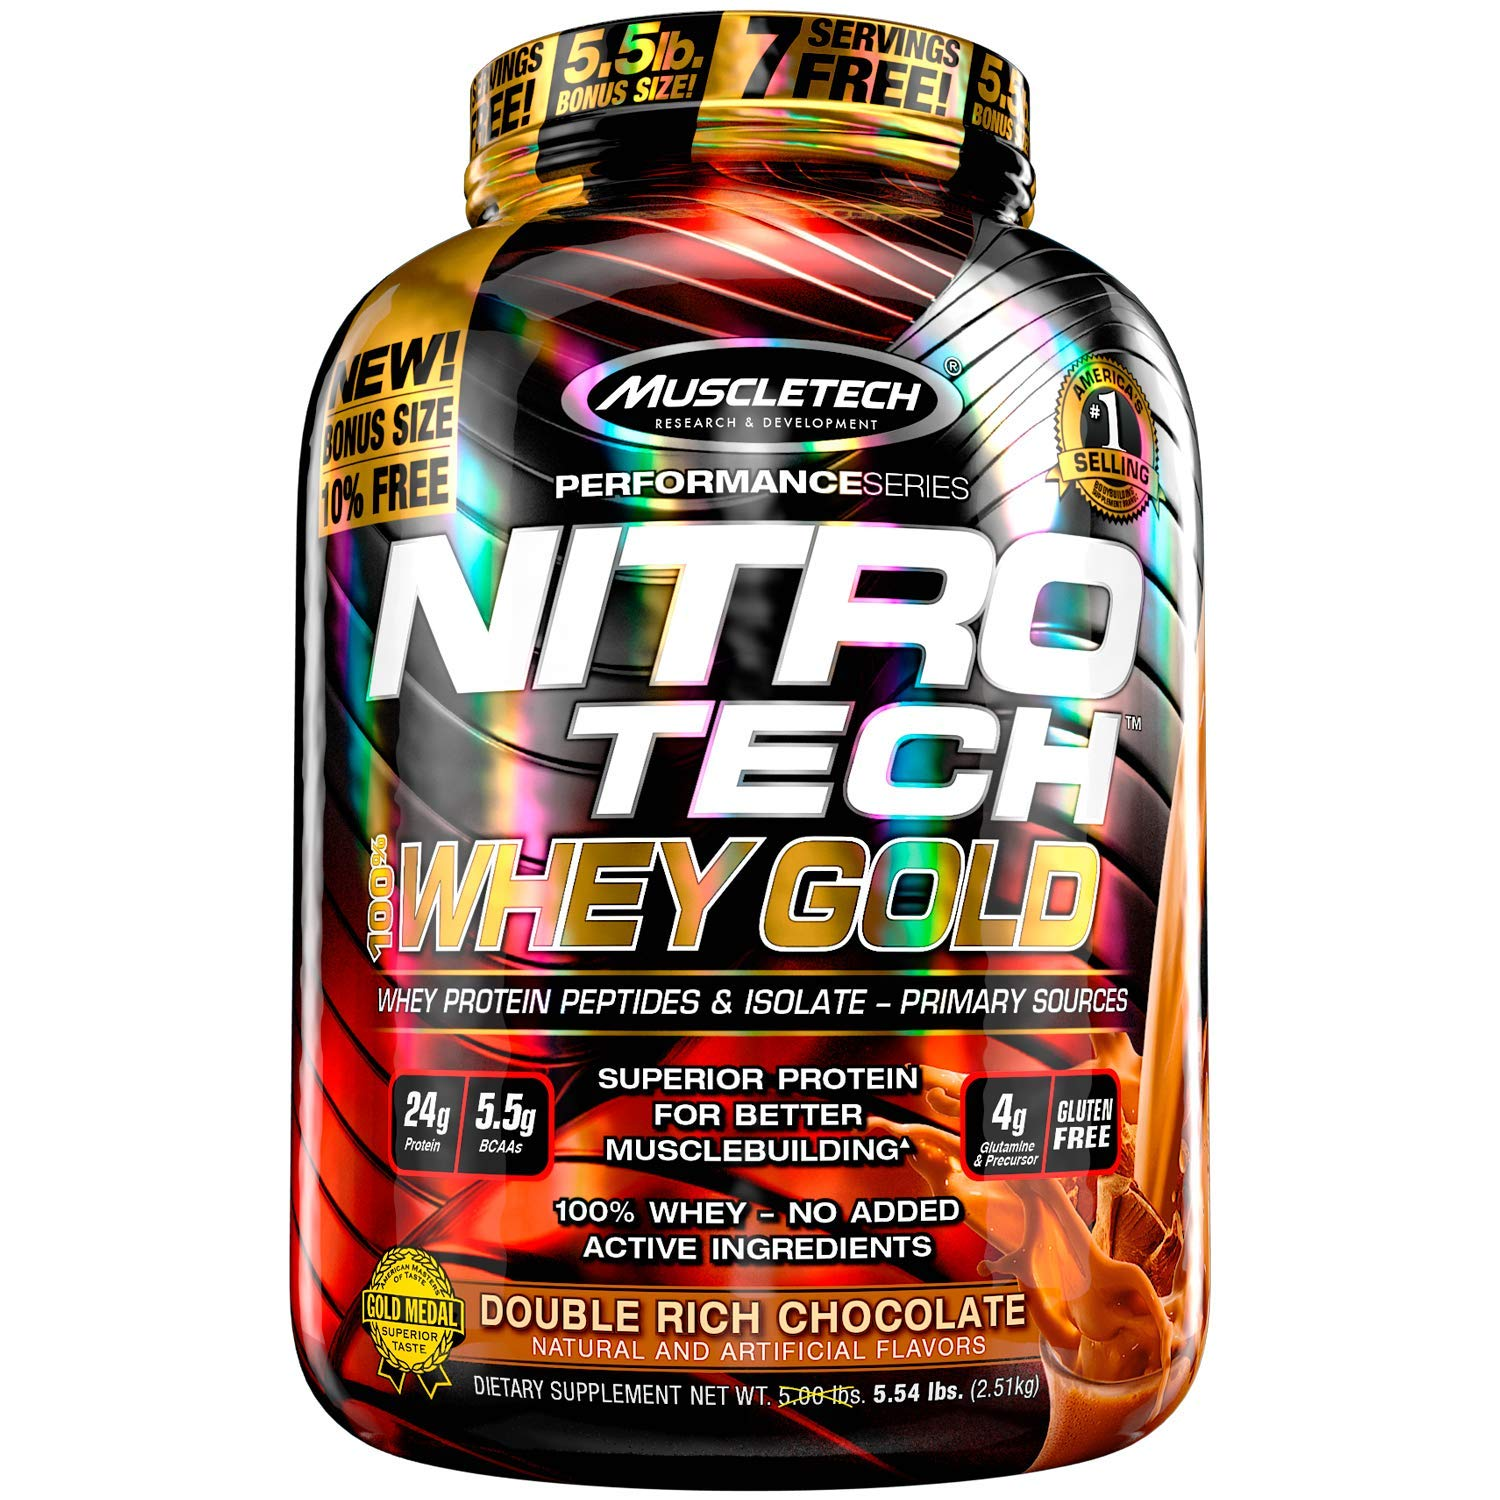 MuscleTech NitroTech Whey Gold, 100% Whey Protein Powder, Whey Isolate and Whey Peptides, Double Rich Chocolate, 5.5 lb by MuscleTech